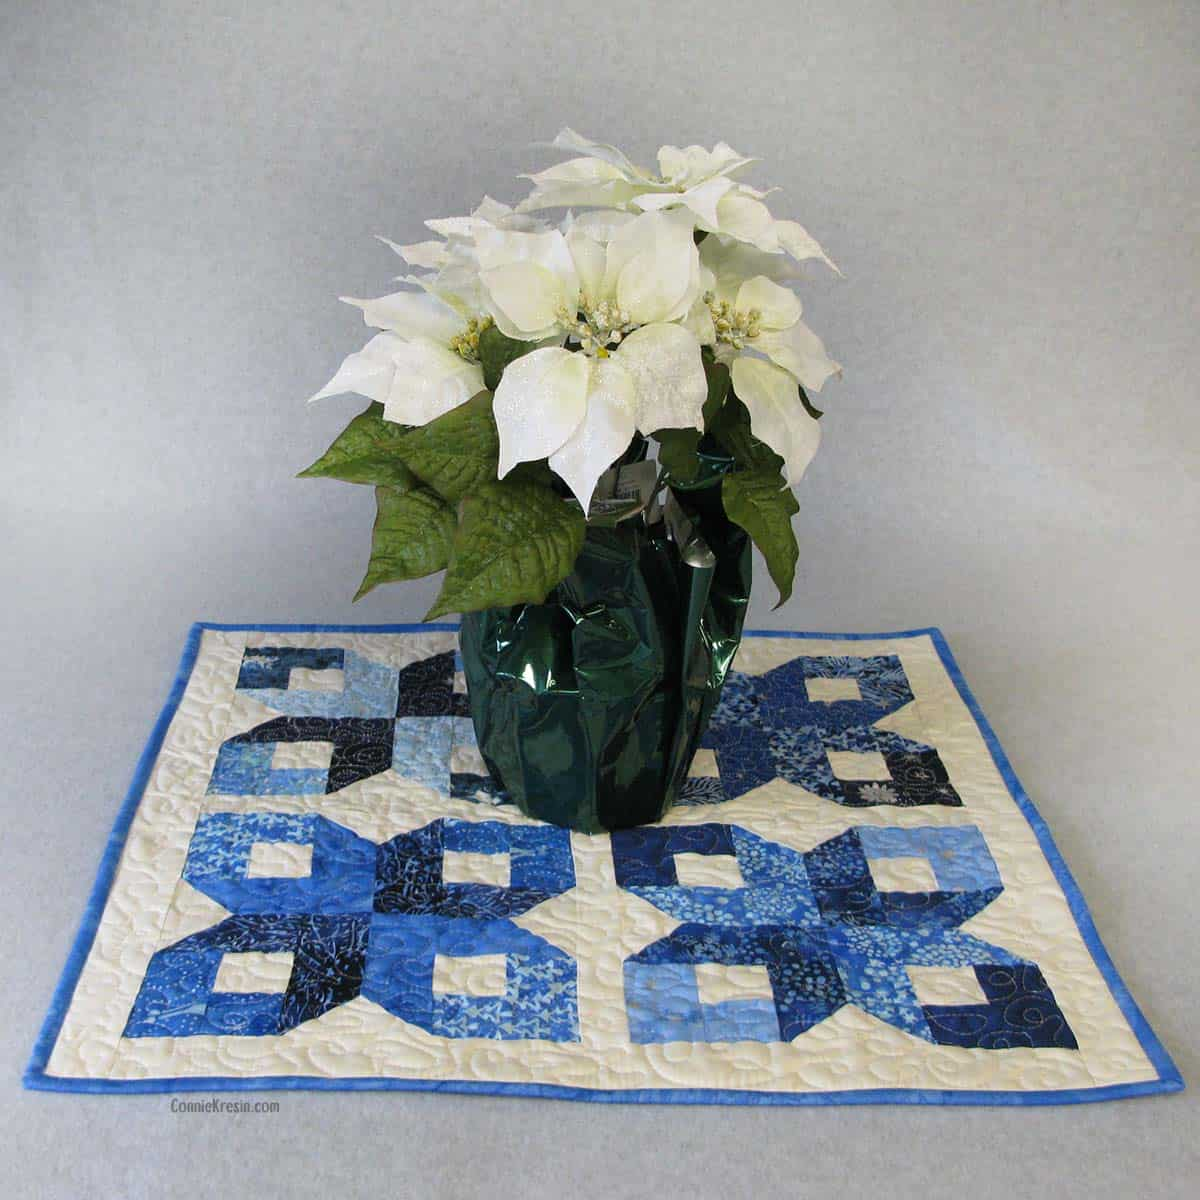 Winter Wonderland table topper tutorial with Christmas flowers